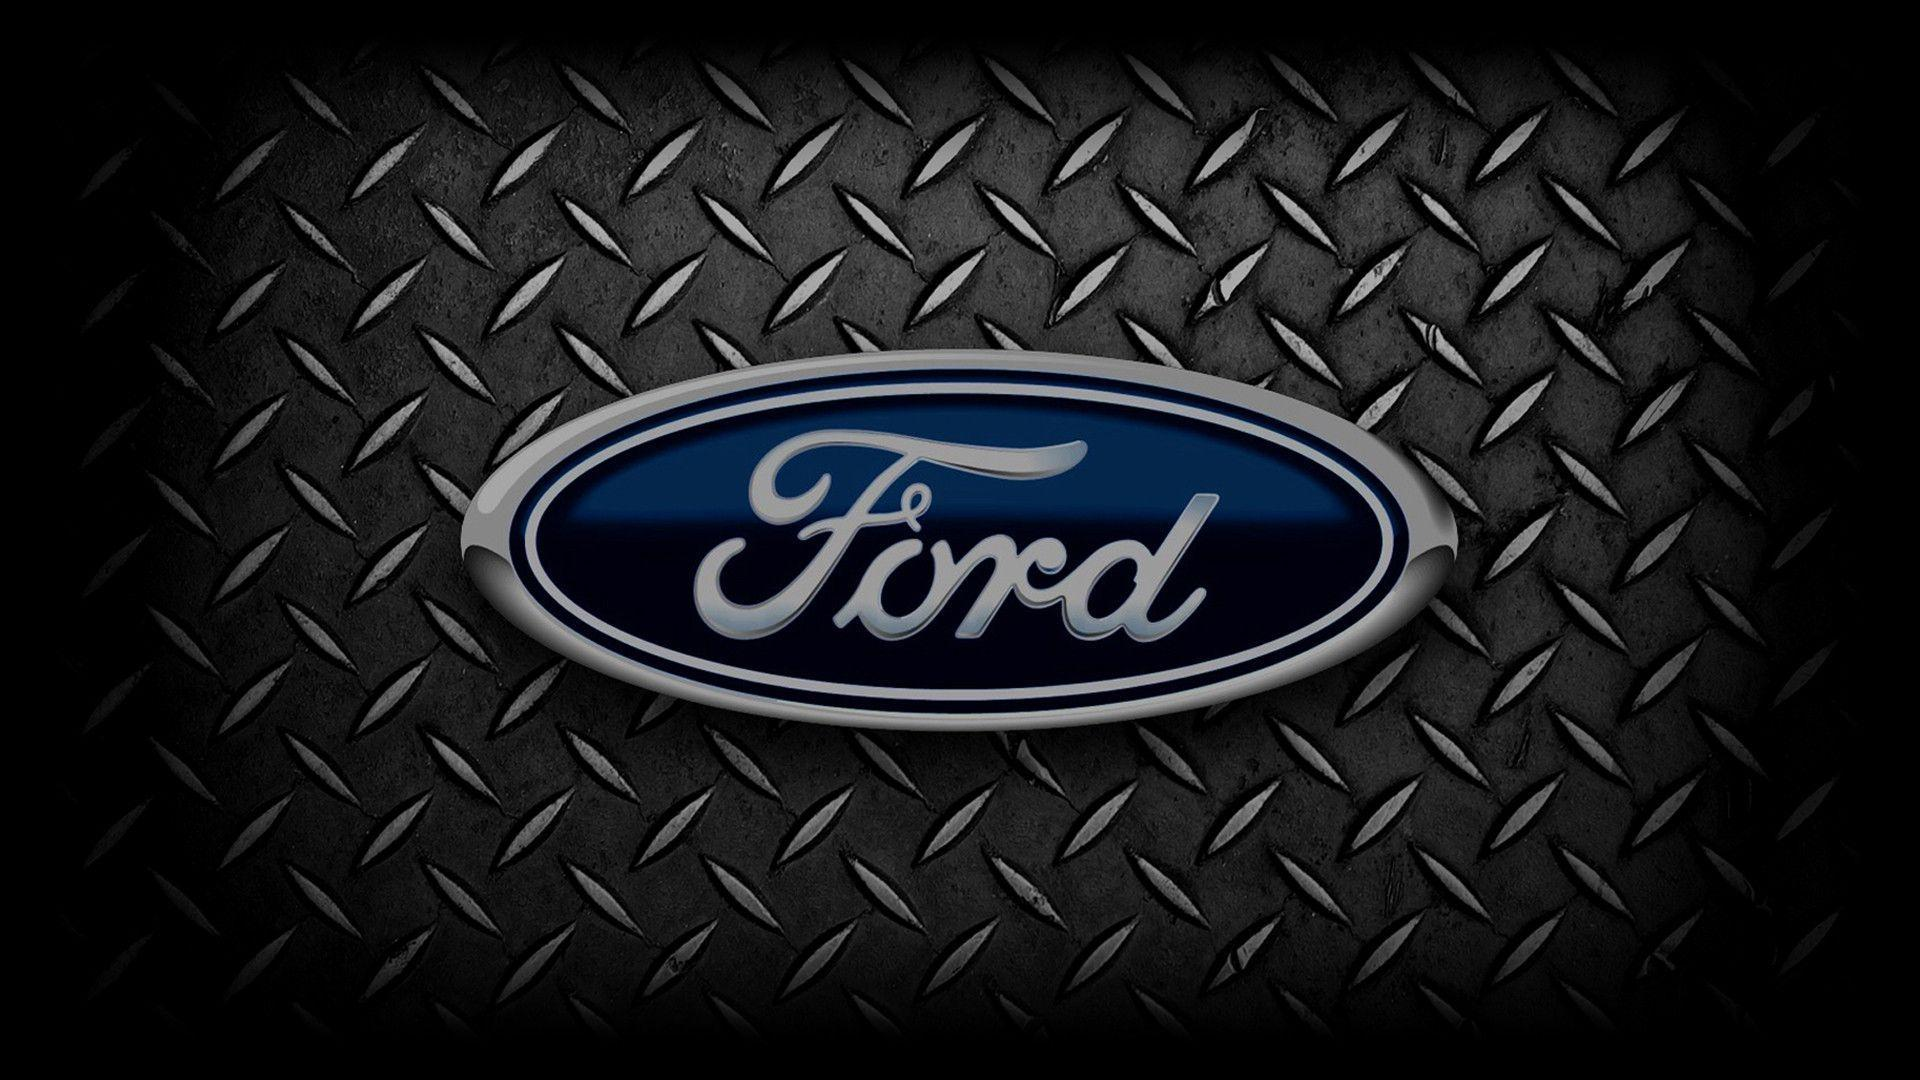 Ford Wallpapers backgrounds In HD for Free Download